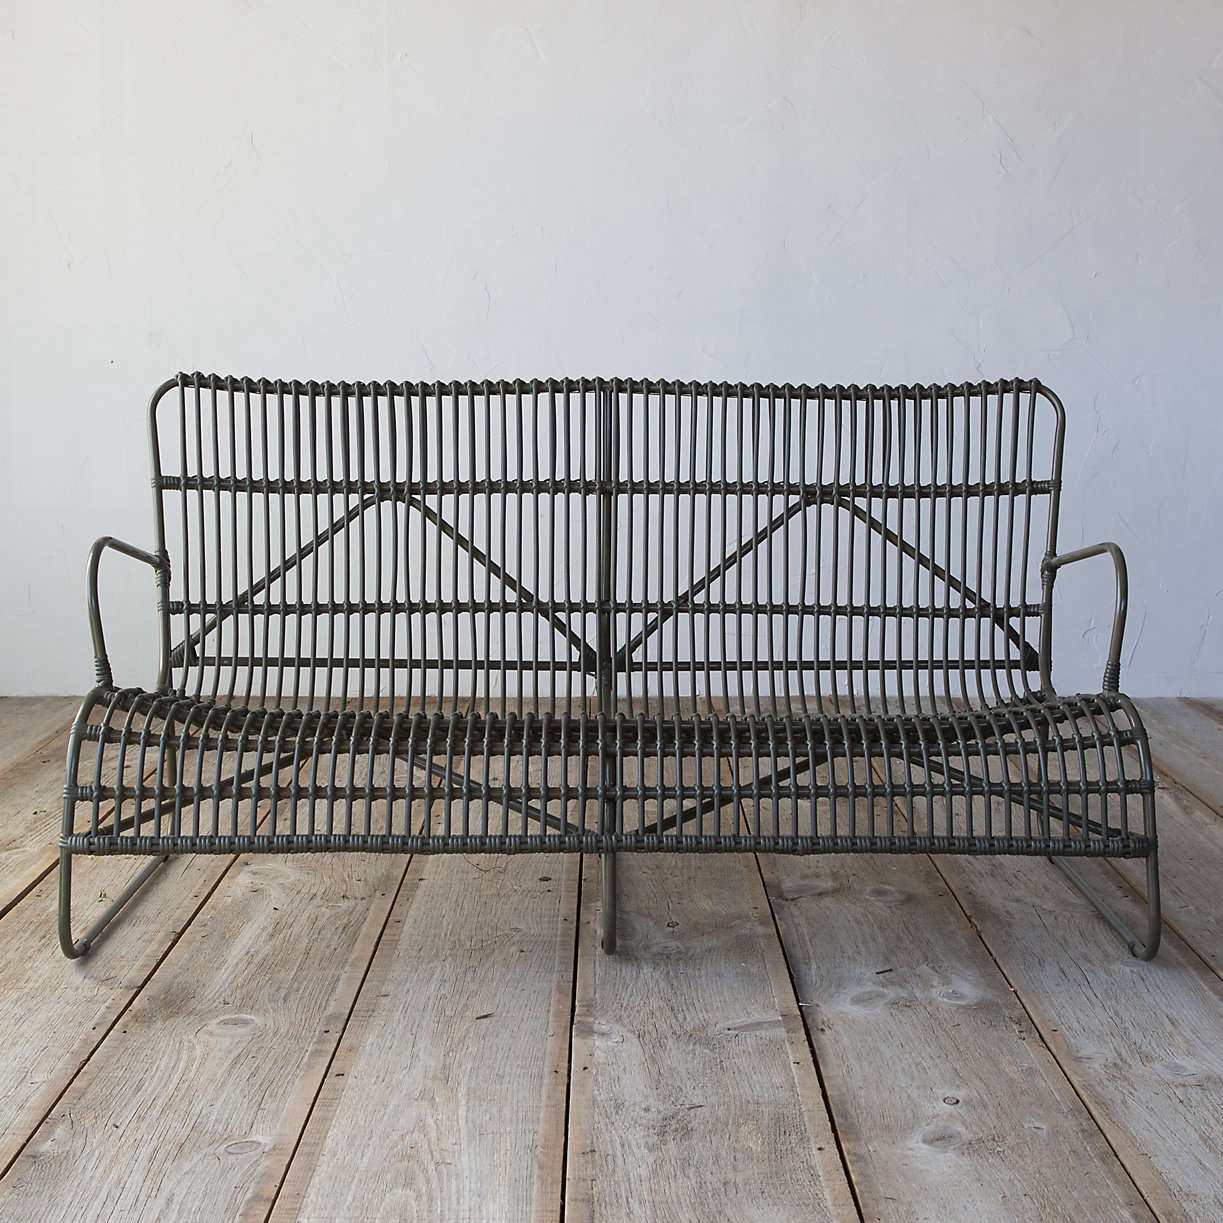 An Open Weave All Weather Wicker Sofa stands up to the weather, with polyester rattan woven around a powder-coated aluminum frame. It measures 58.1 inches long; $898 from Terrain.